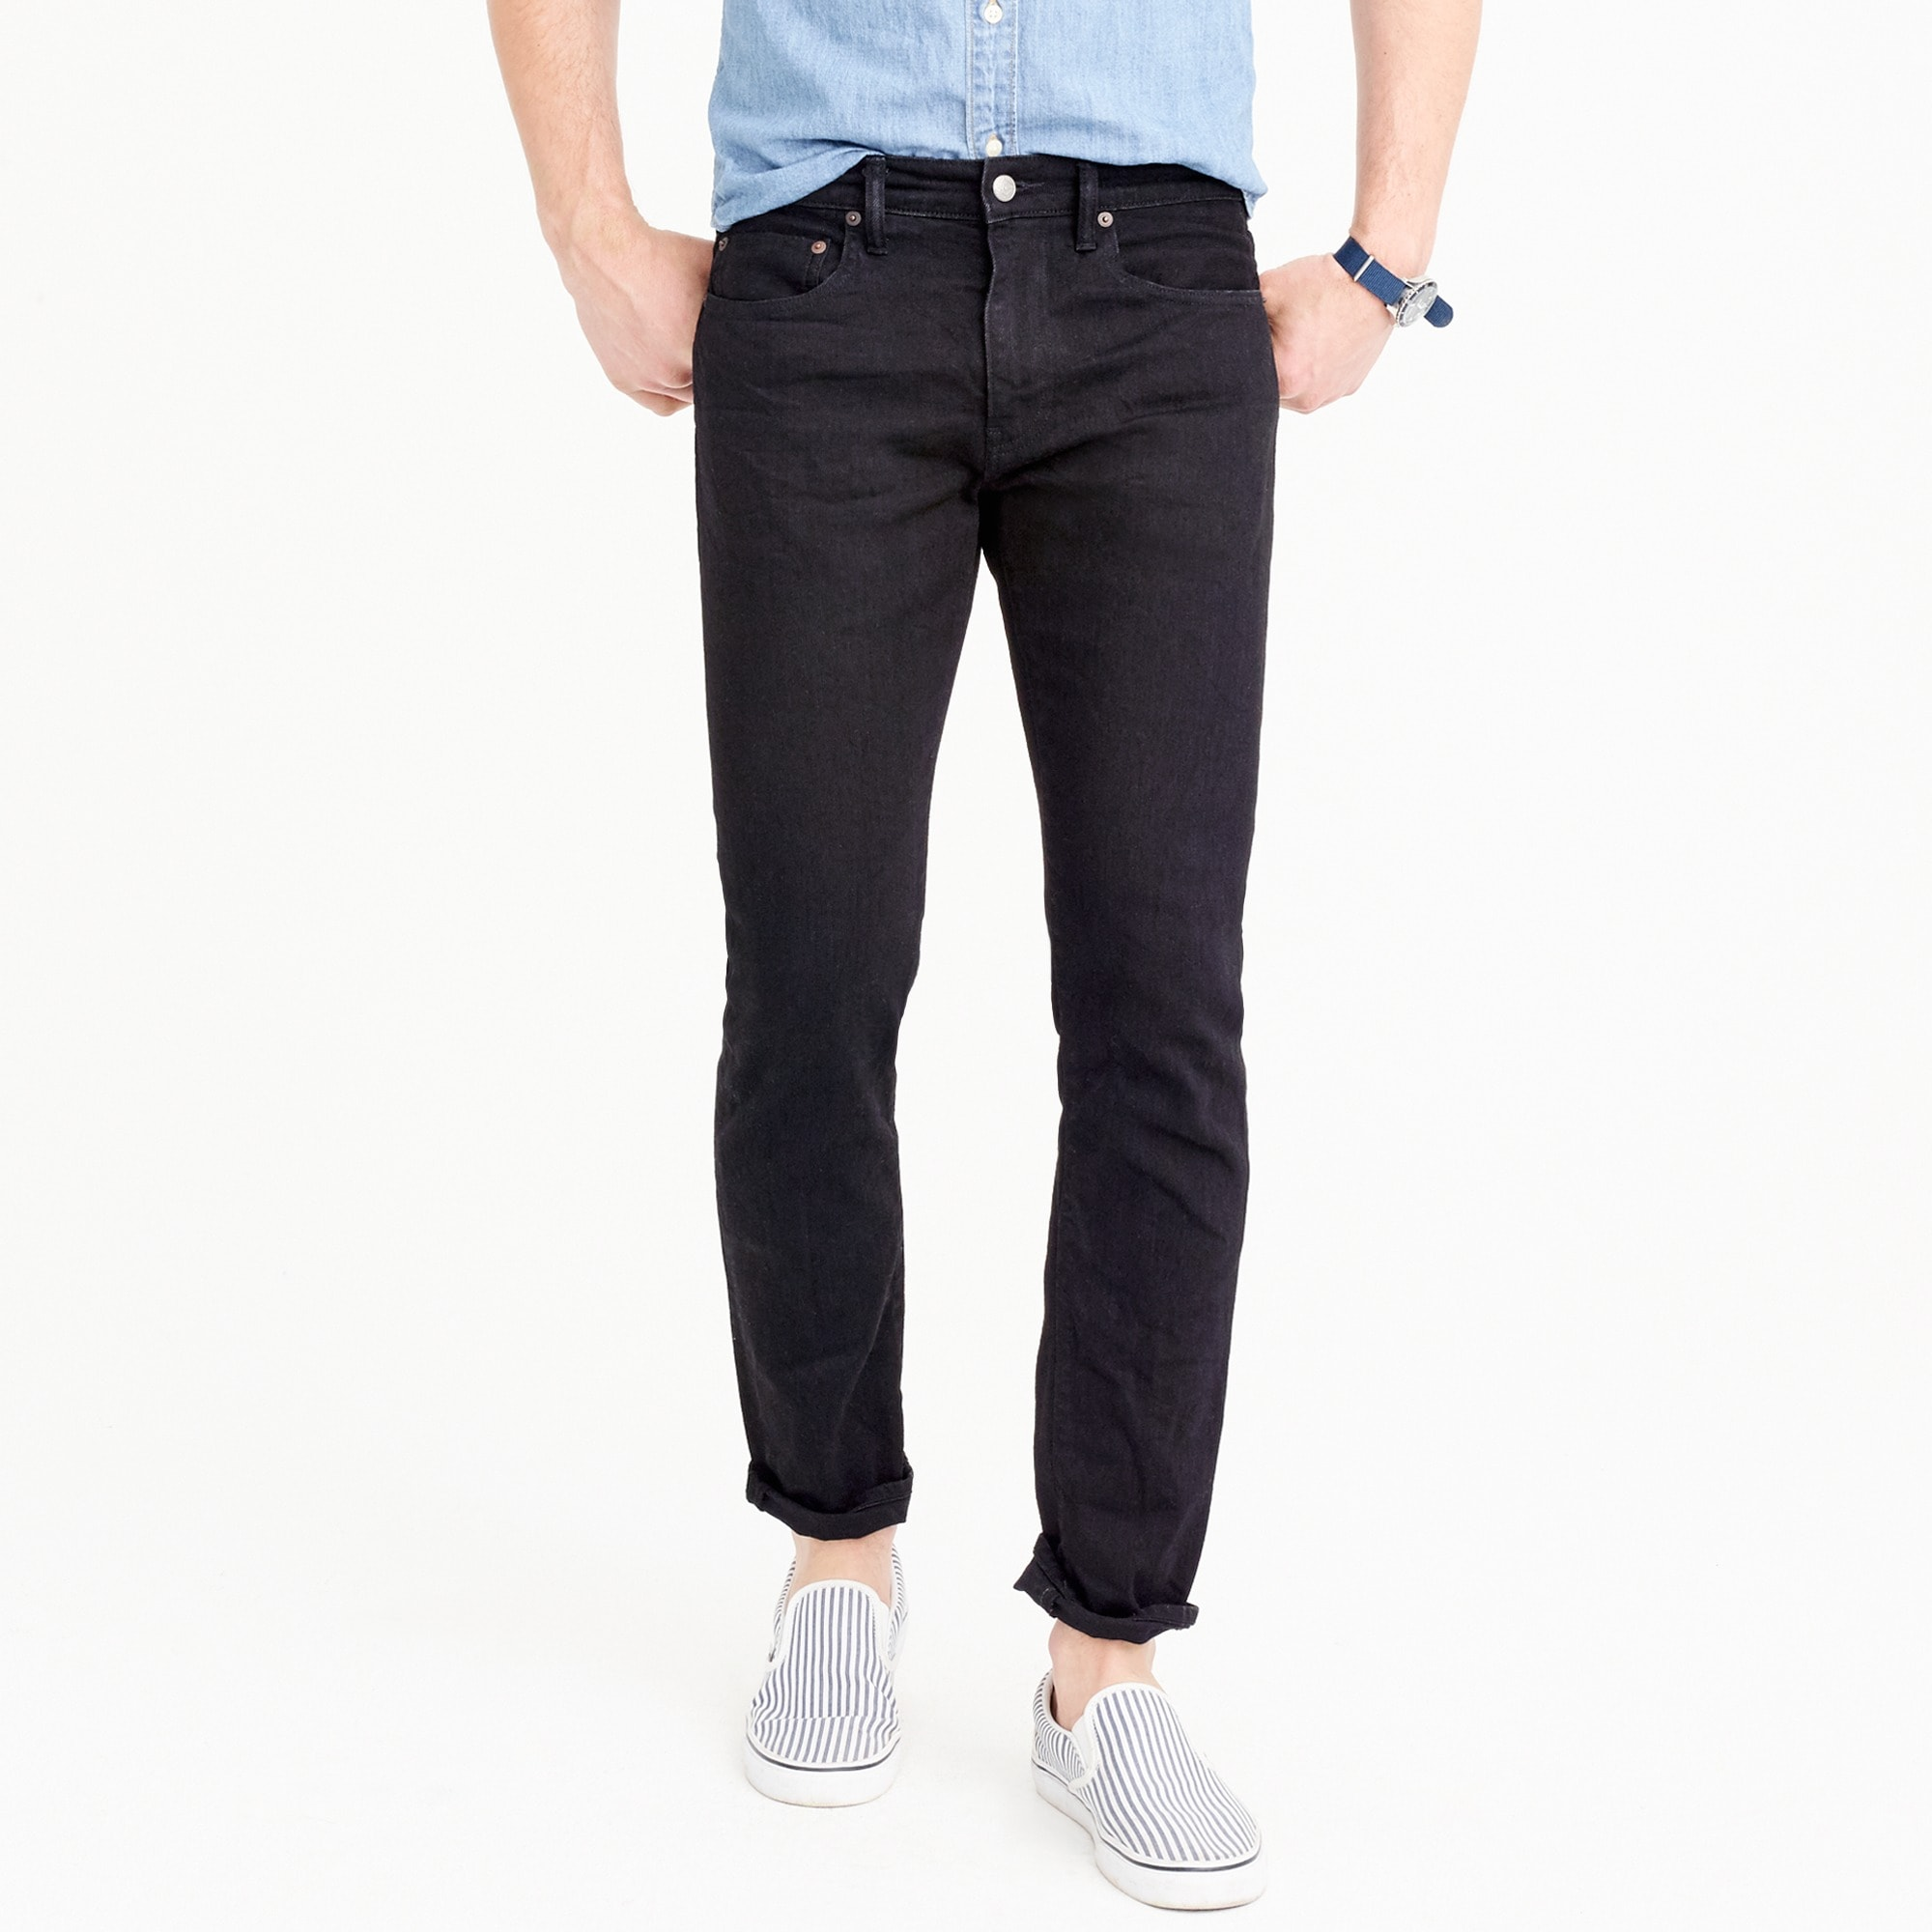 484 Slim-fit jean in black stretch denim men denim c